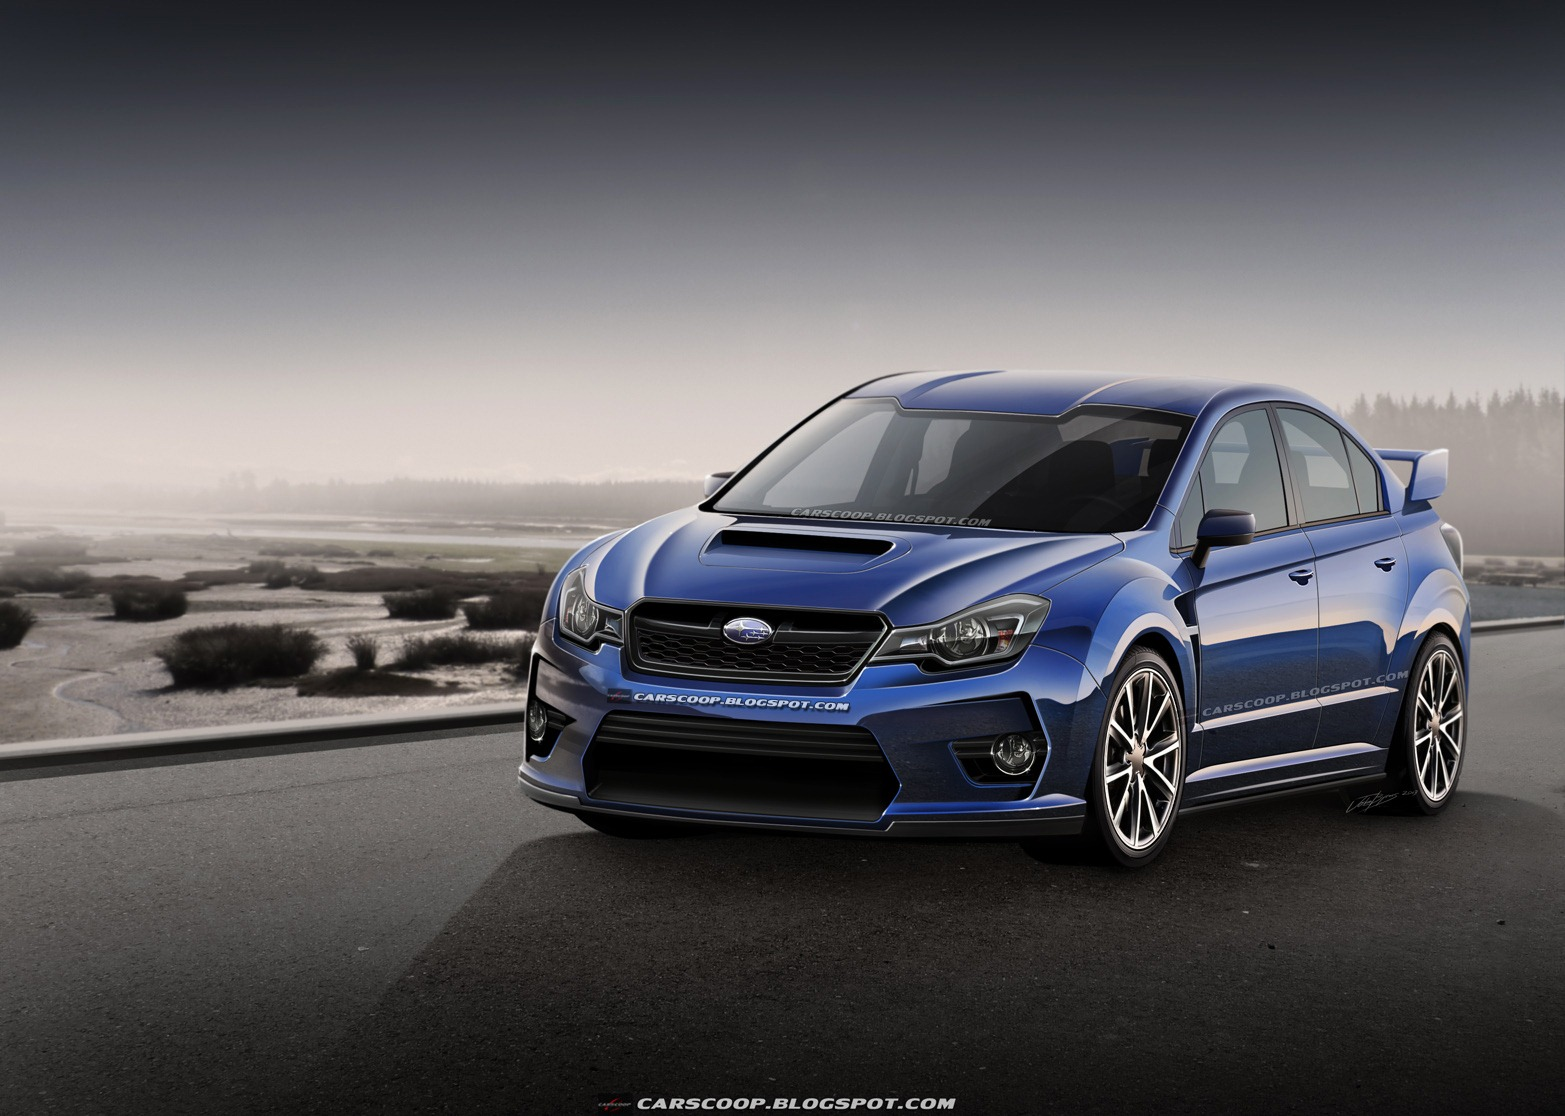 subaru wrx sti hatchback 2014 review amazing pictures and images look at the car. Black Bedroom Furniture Sets. Home Design Ideas